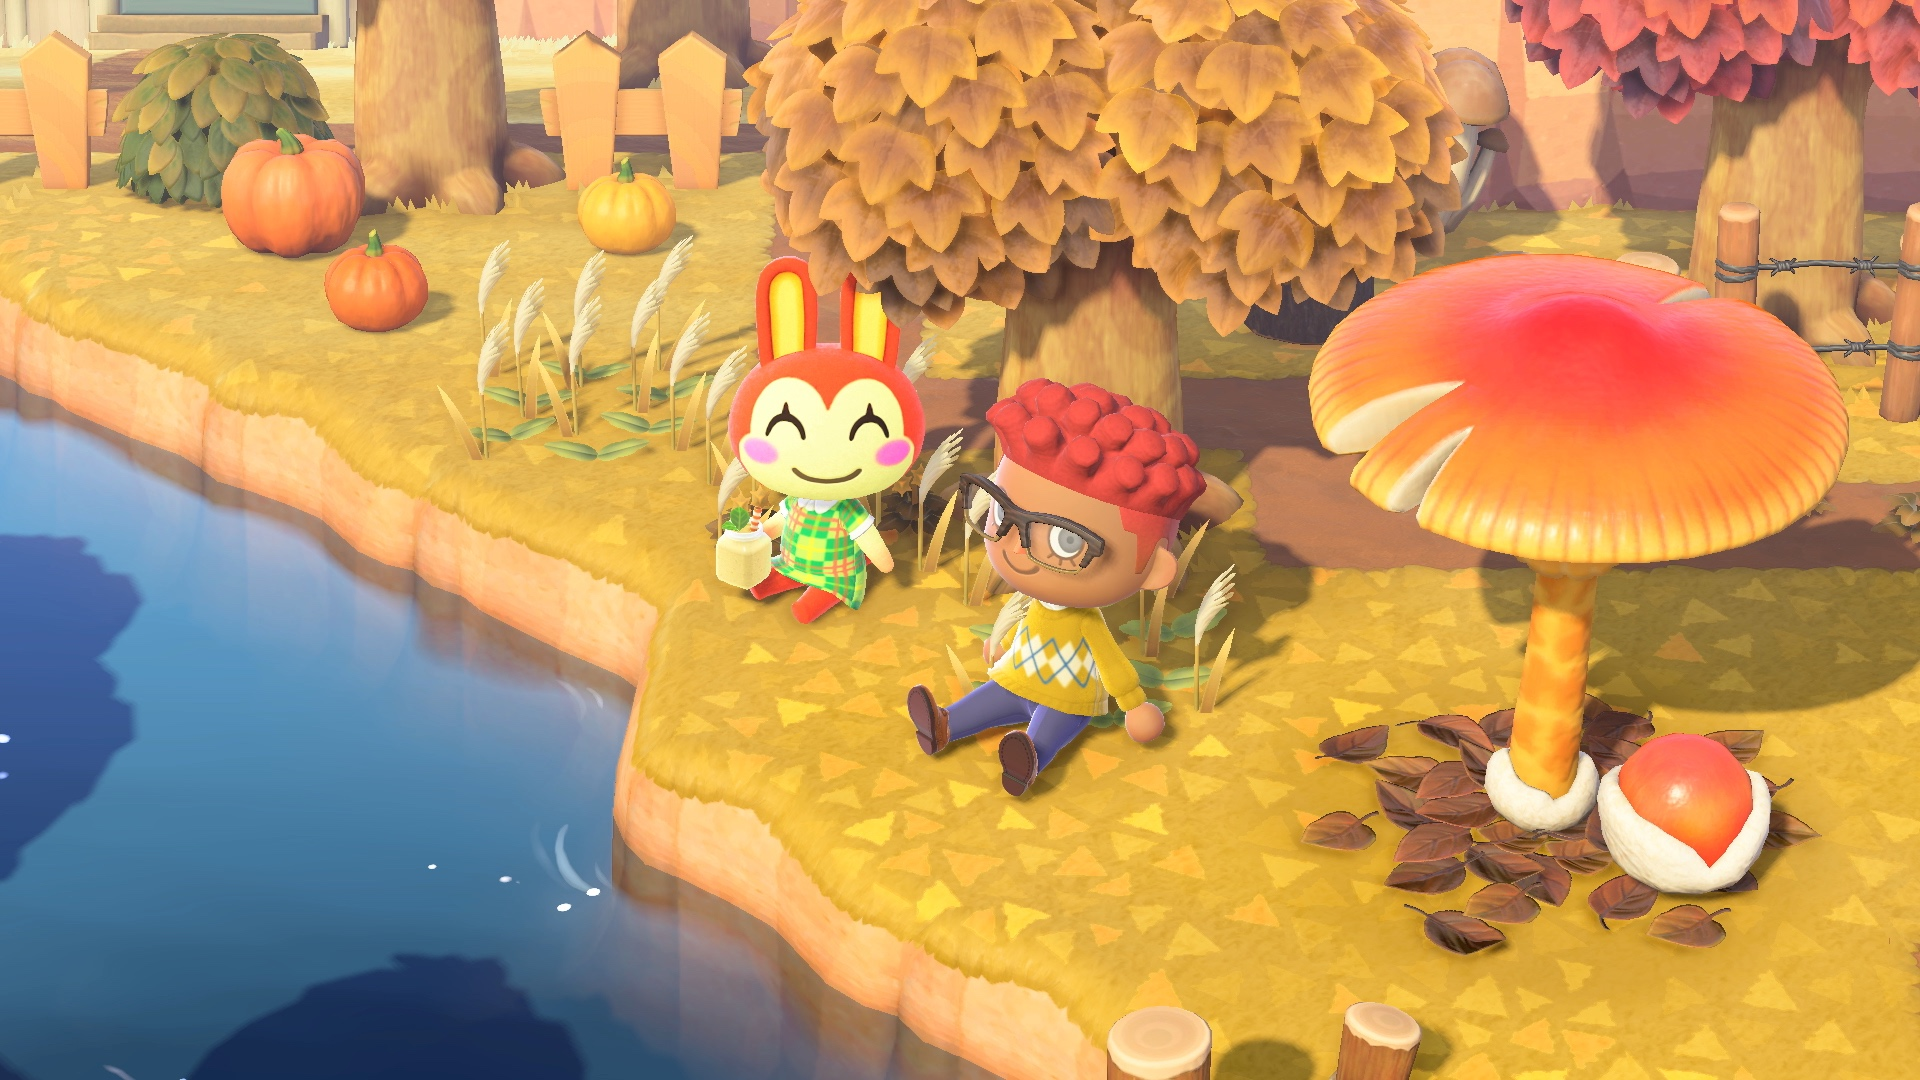 An island resident and bunny sit by a river in a screenshot from Animal Crossing: New Horizons